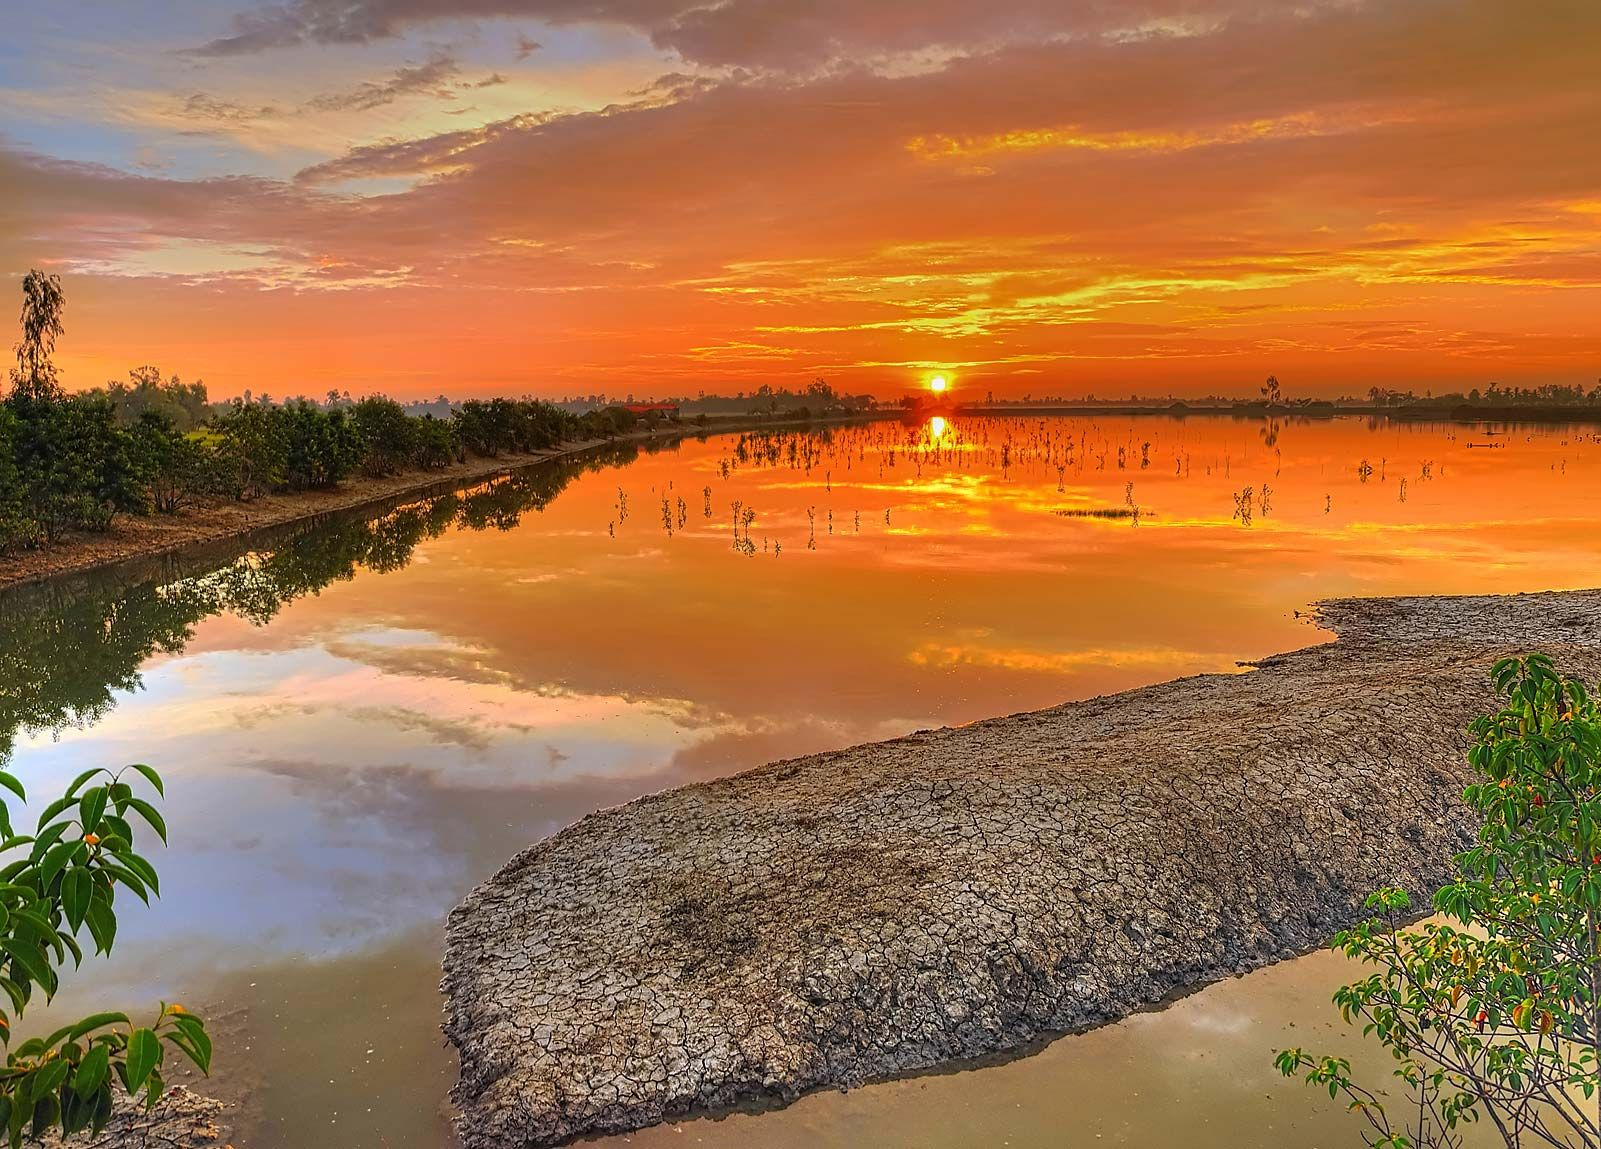 The Sundarbans is a natural region in the Bengal region